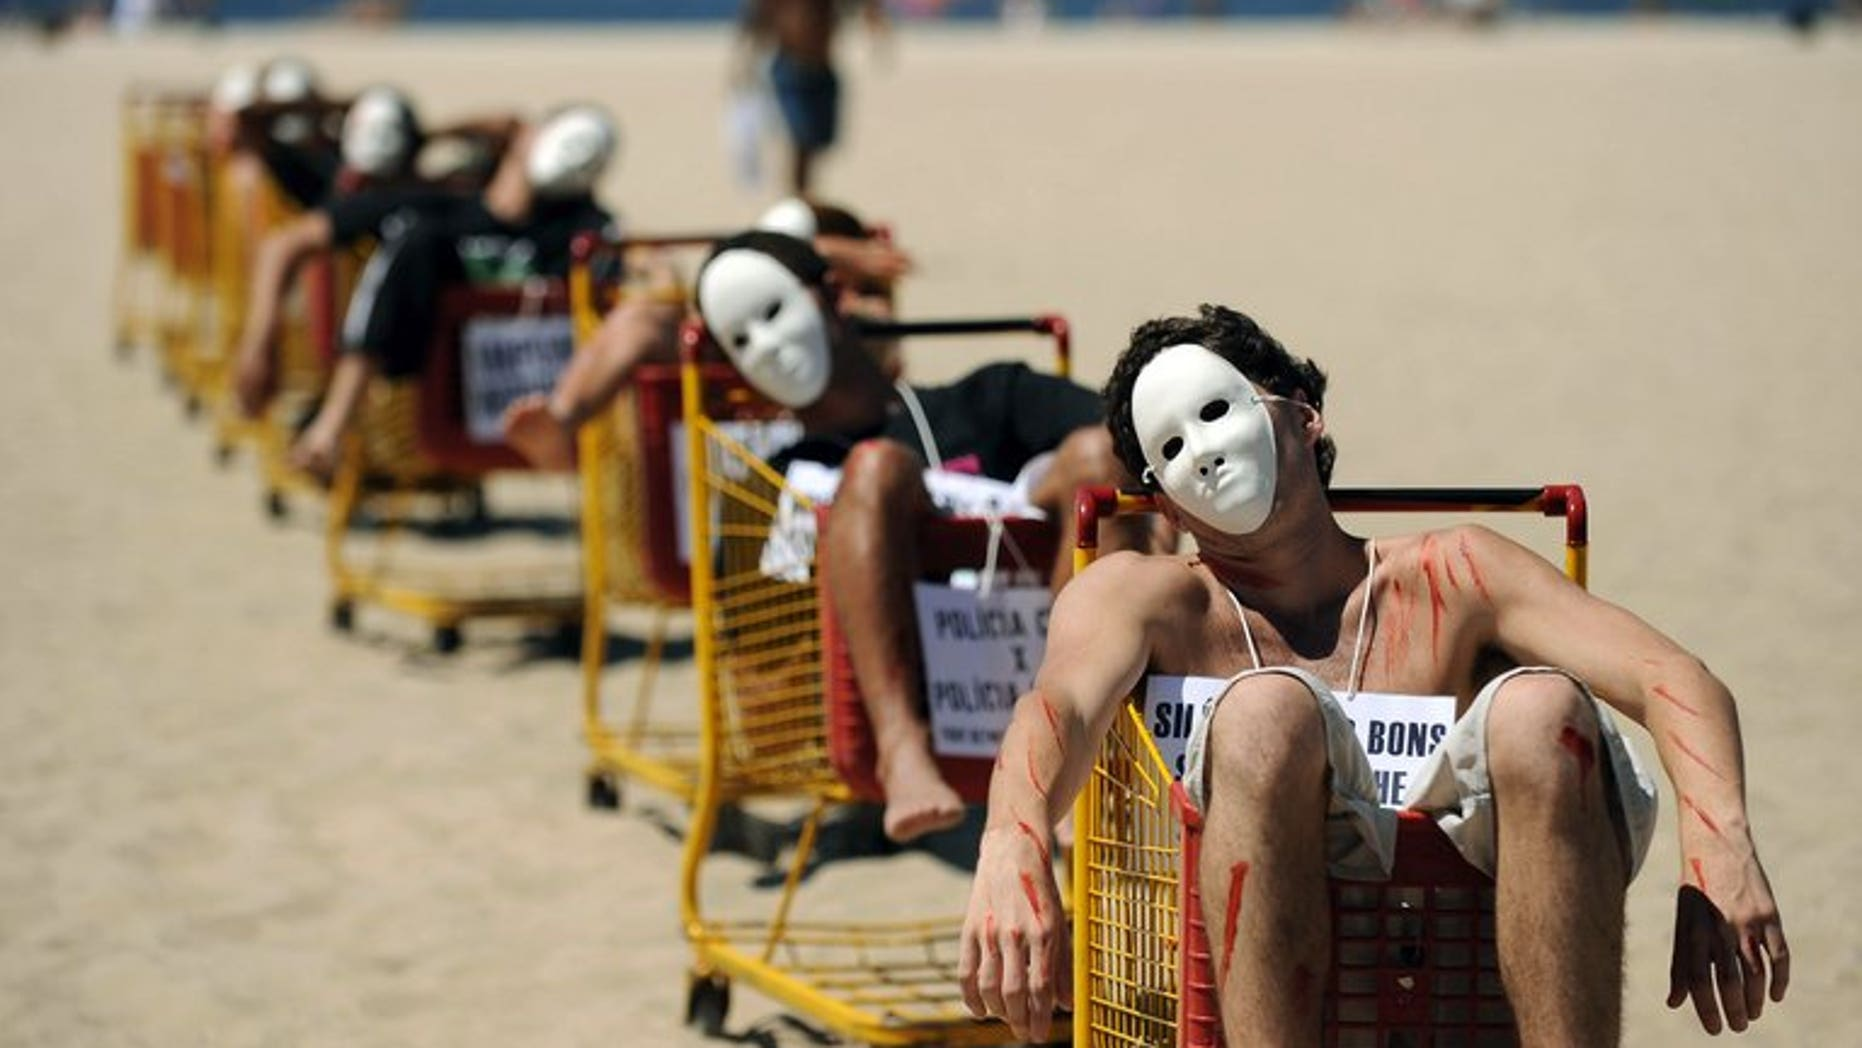 People demonstrate against violence at Copacabana beach in Rio de Janeiro on October 24, 2009. More than one million people were murdered in Brazil between 1980 and 2011, making it the world's seventh most violent country, a survey showed Thursday.